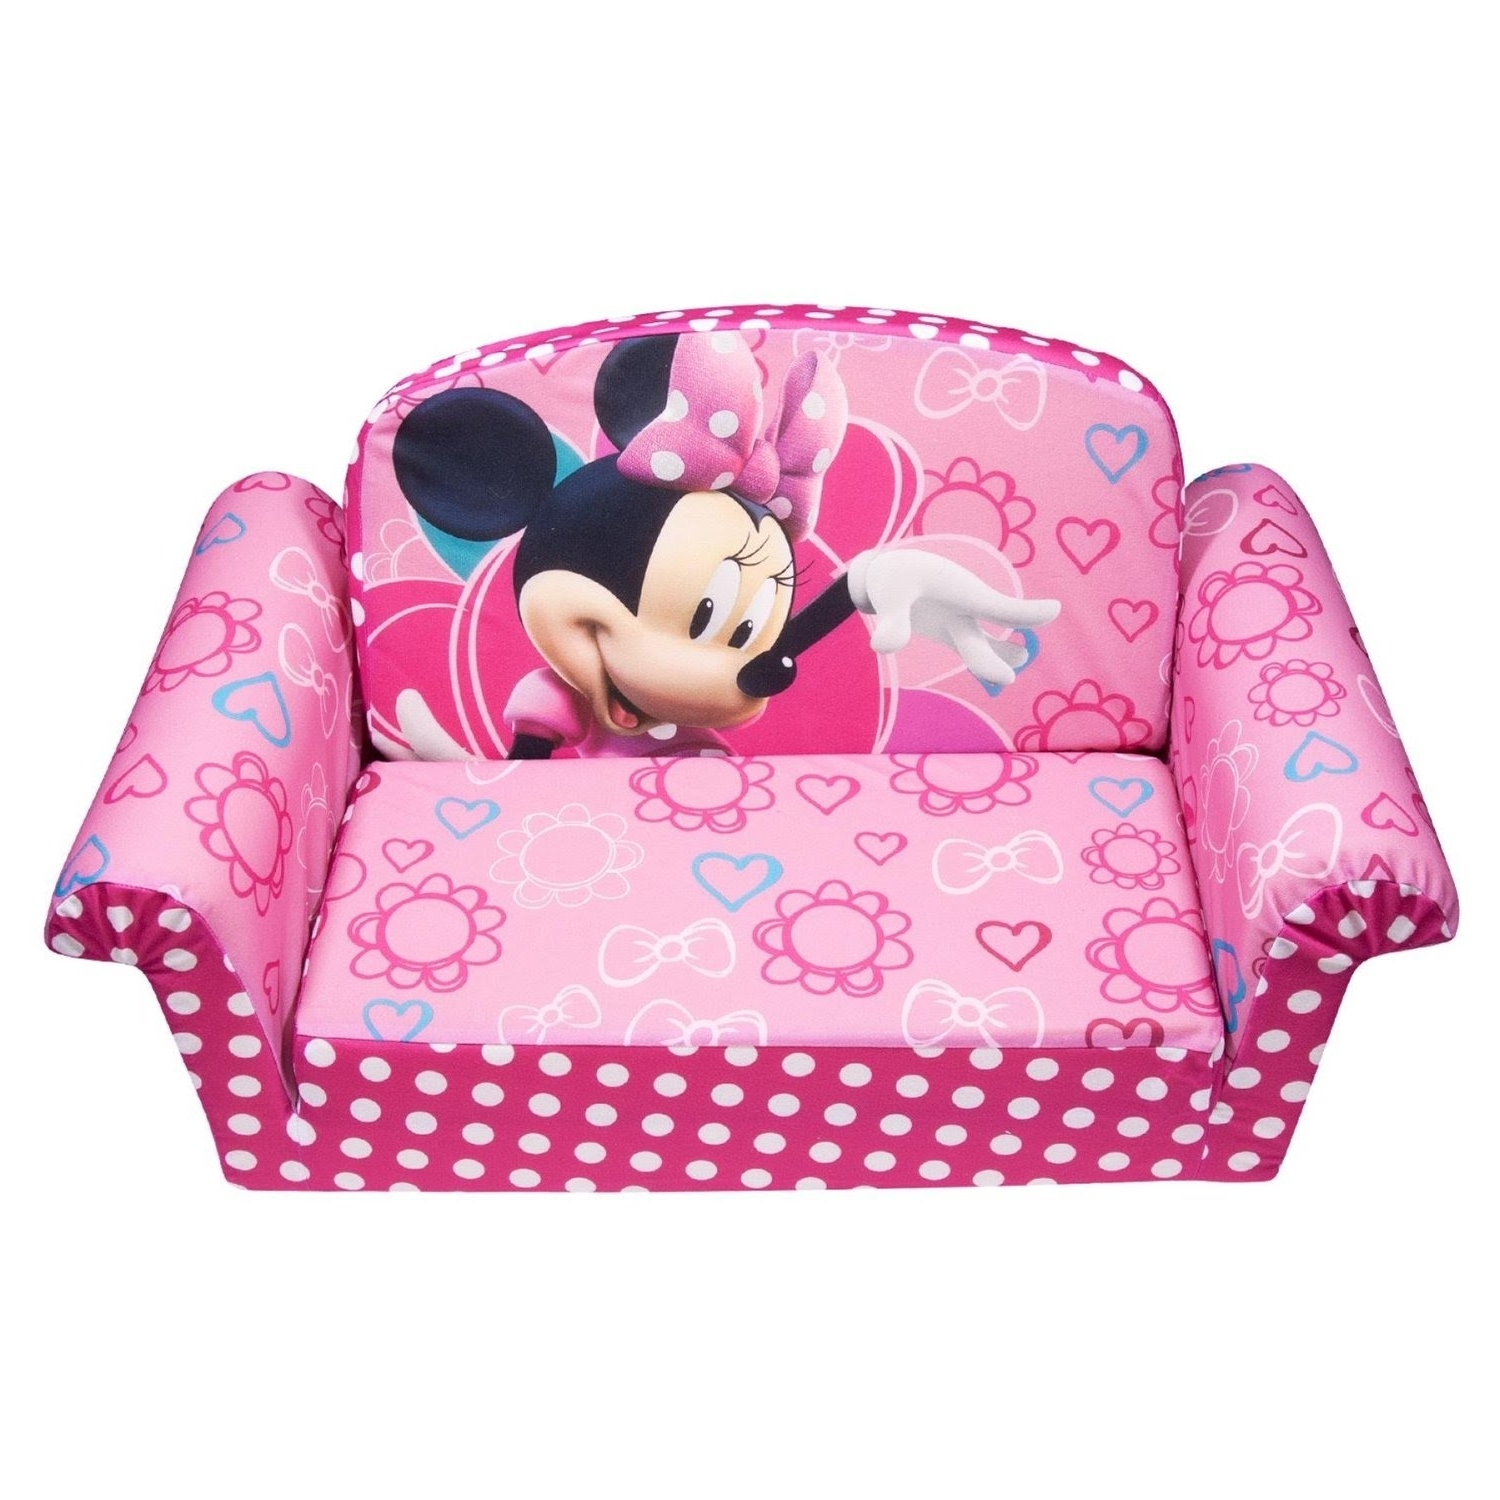 Disney Sofa Chairs Throughout Well Known Review: Marshmallow Children's Furniture – 2 In 1 Flip Open Sofa (Gallery 3 of 20)